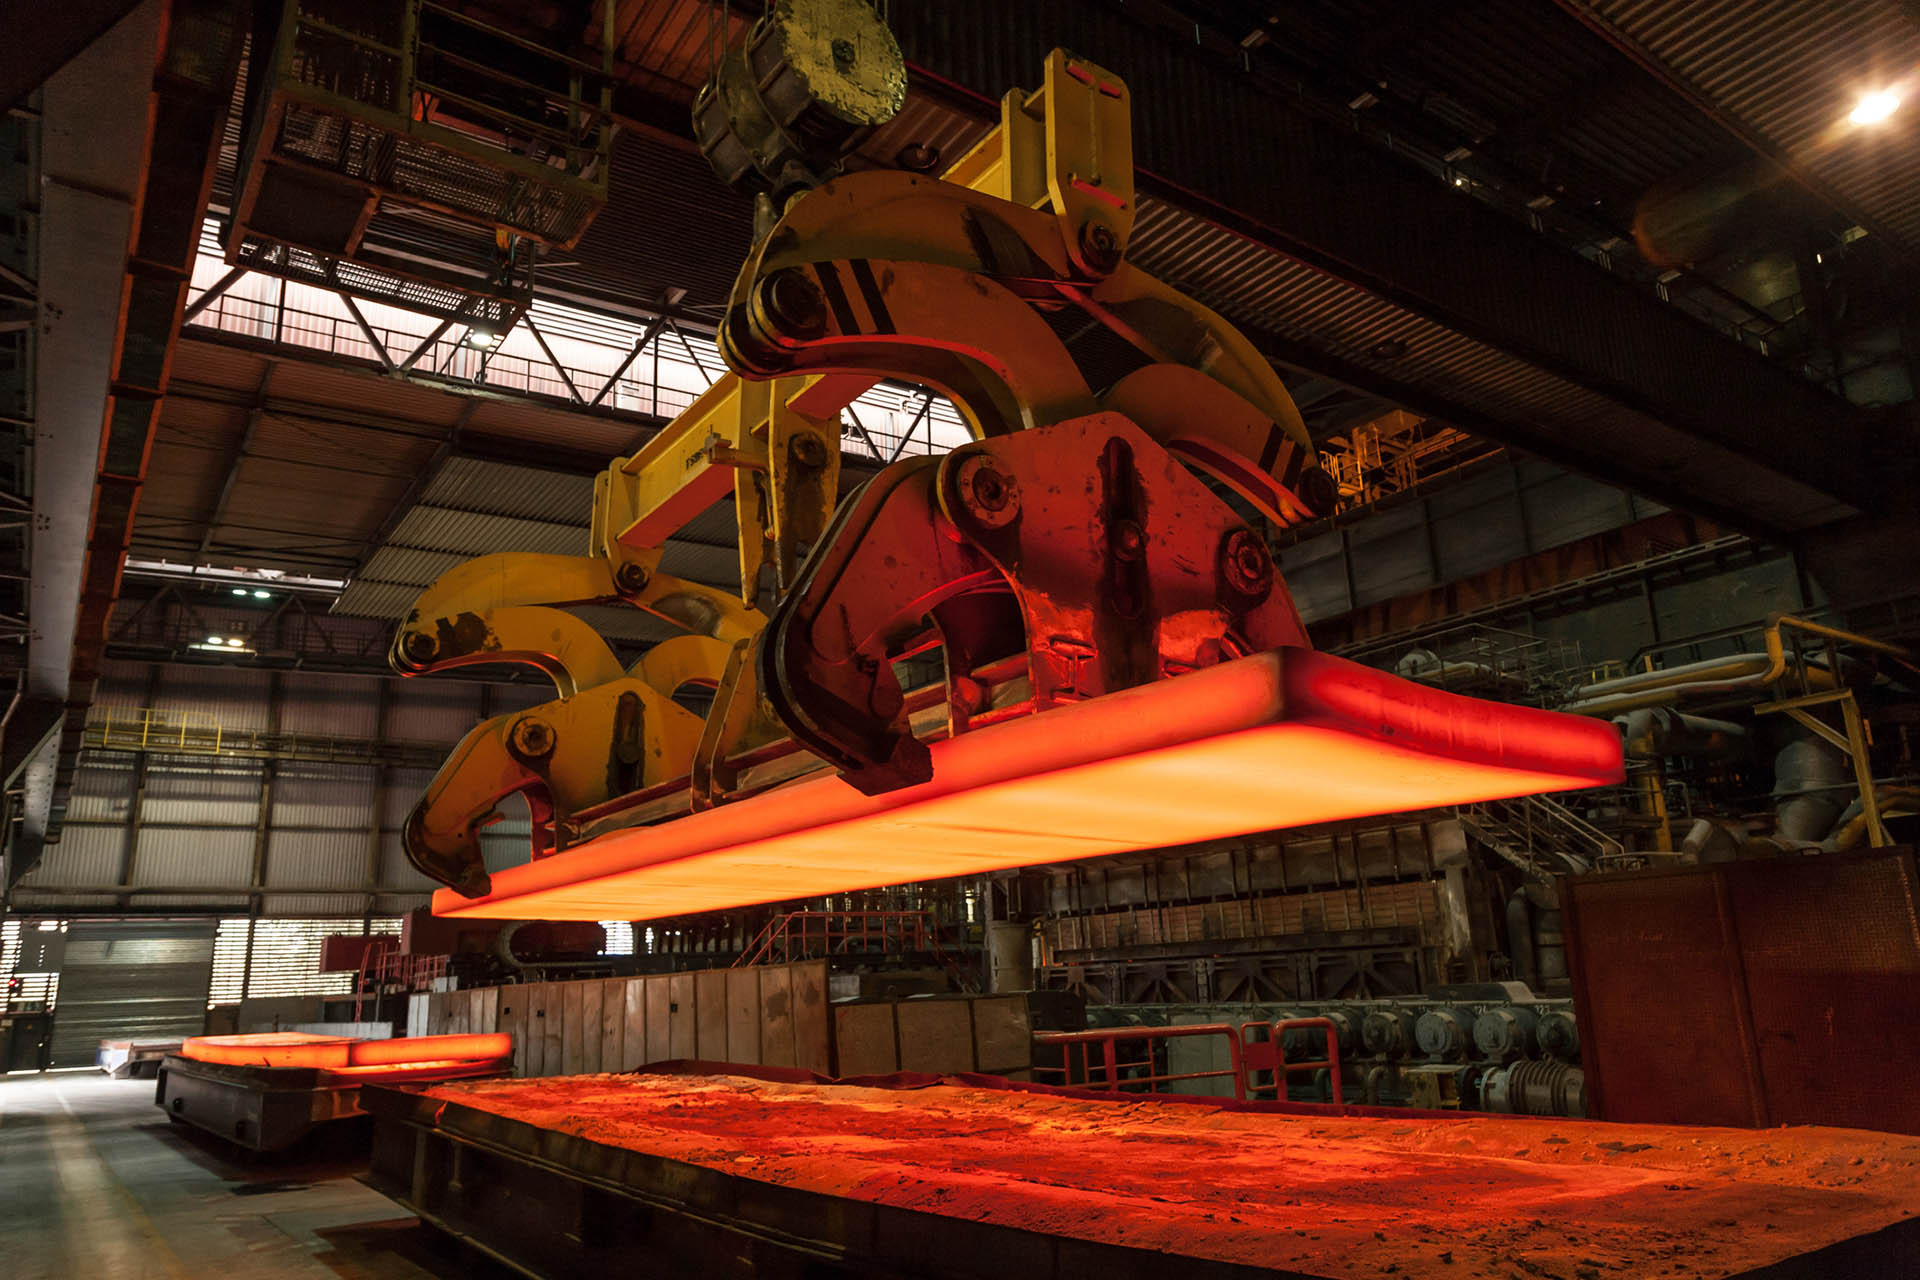 Metal crane moving a hot mass of steel with power